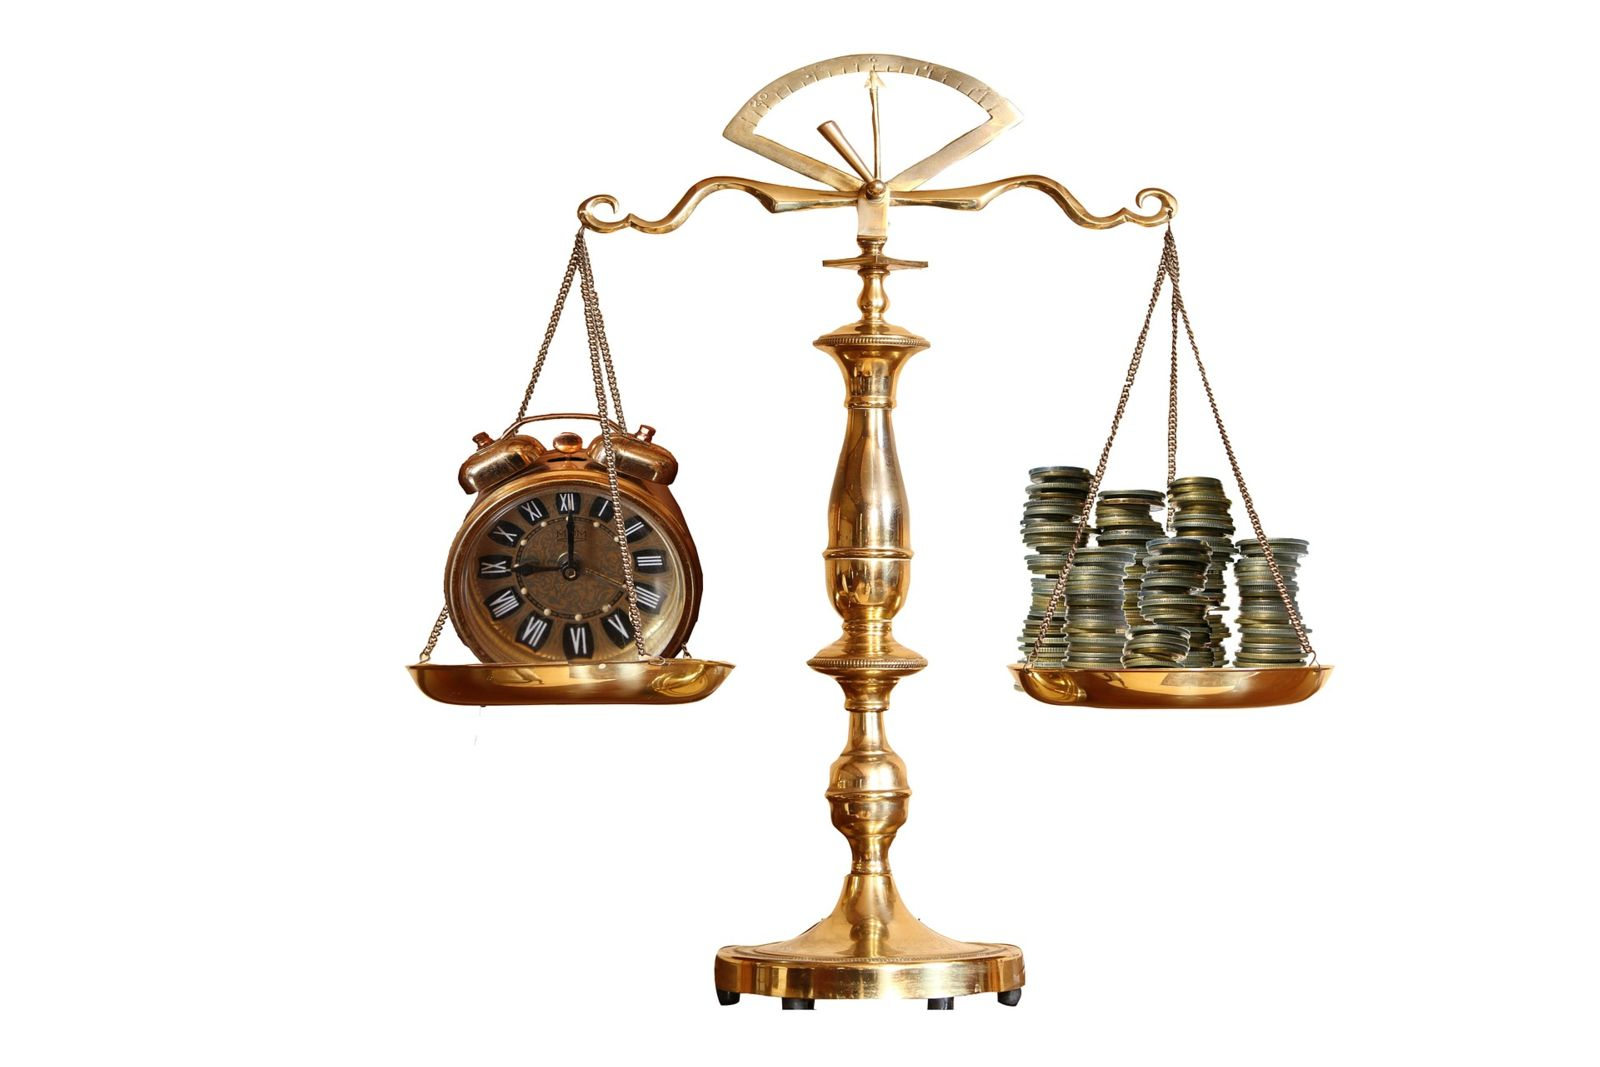 Golden Scale holding time and money